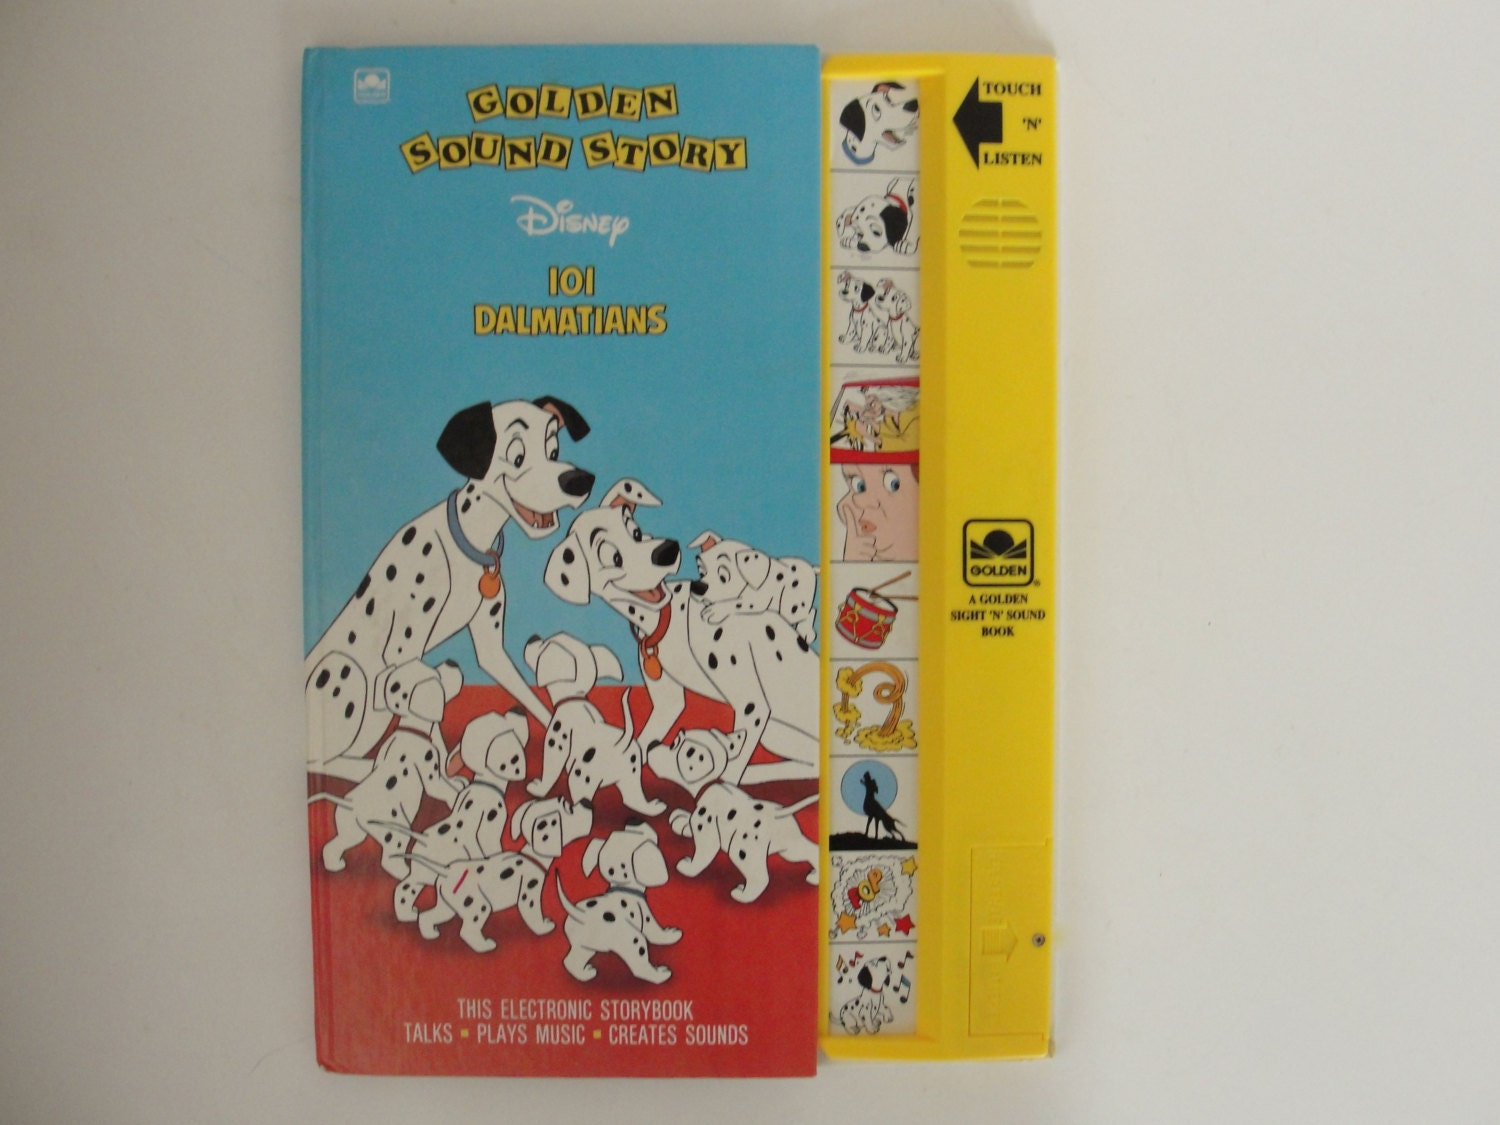 Disney S 101 Dalmatians Golden Sound Story By Whilesjssleeping